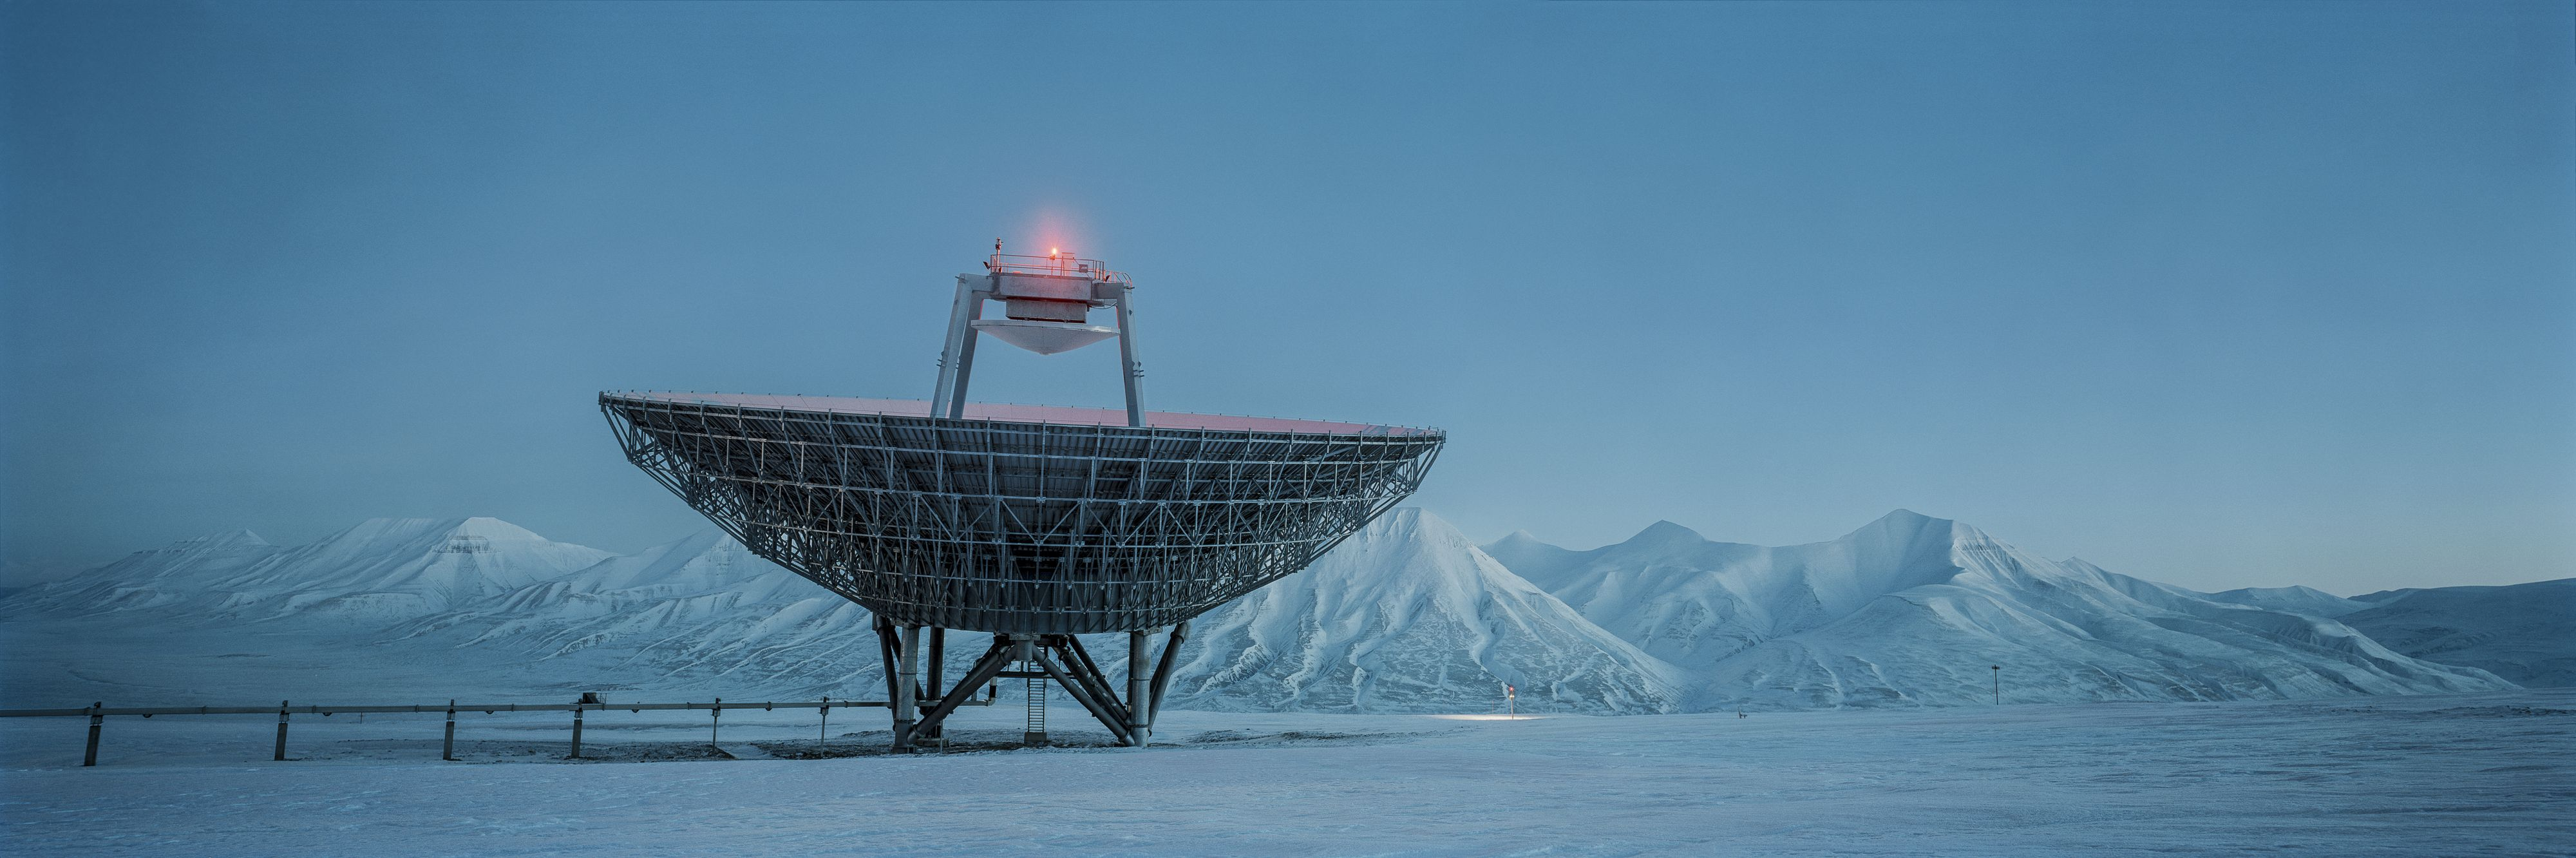 Winternight, Arctic Technology, Spitsbergen,Christian Houge,Photographie